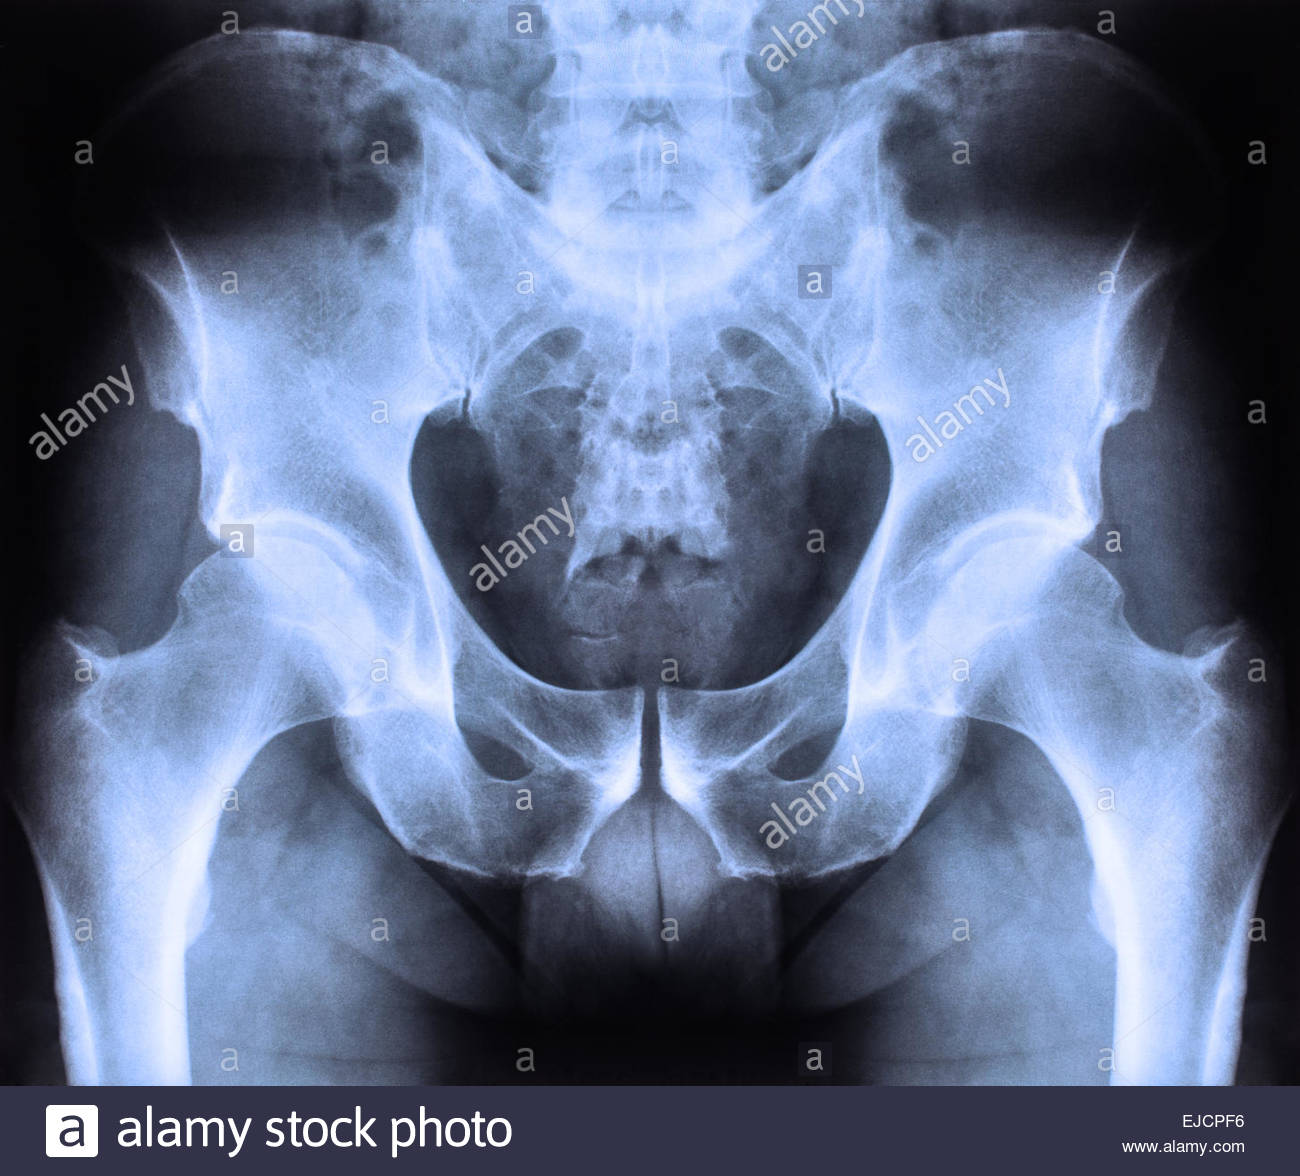 X ray of spine and pelvis - Stock Image